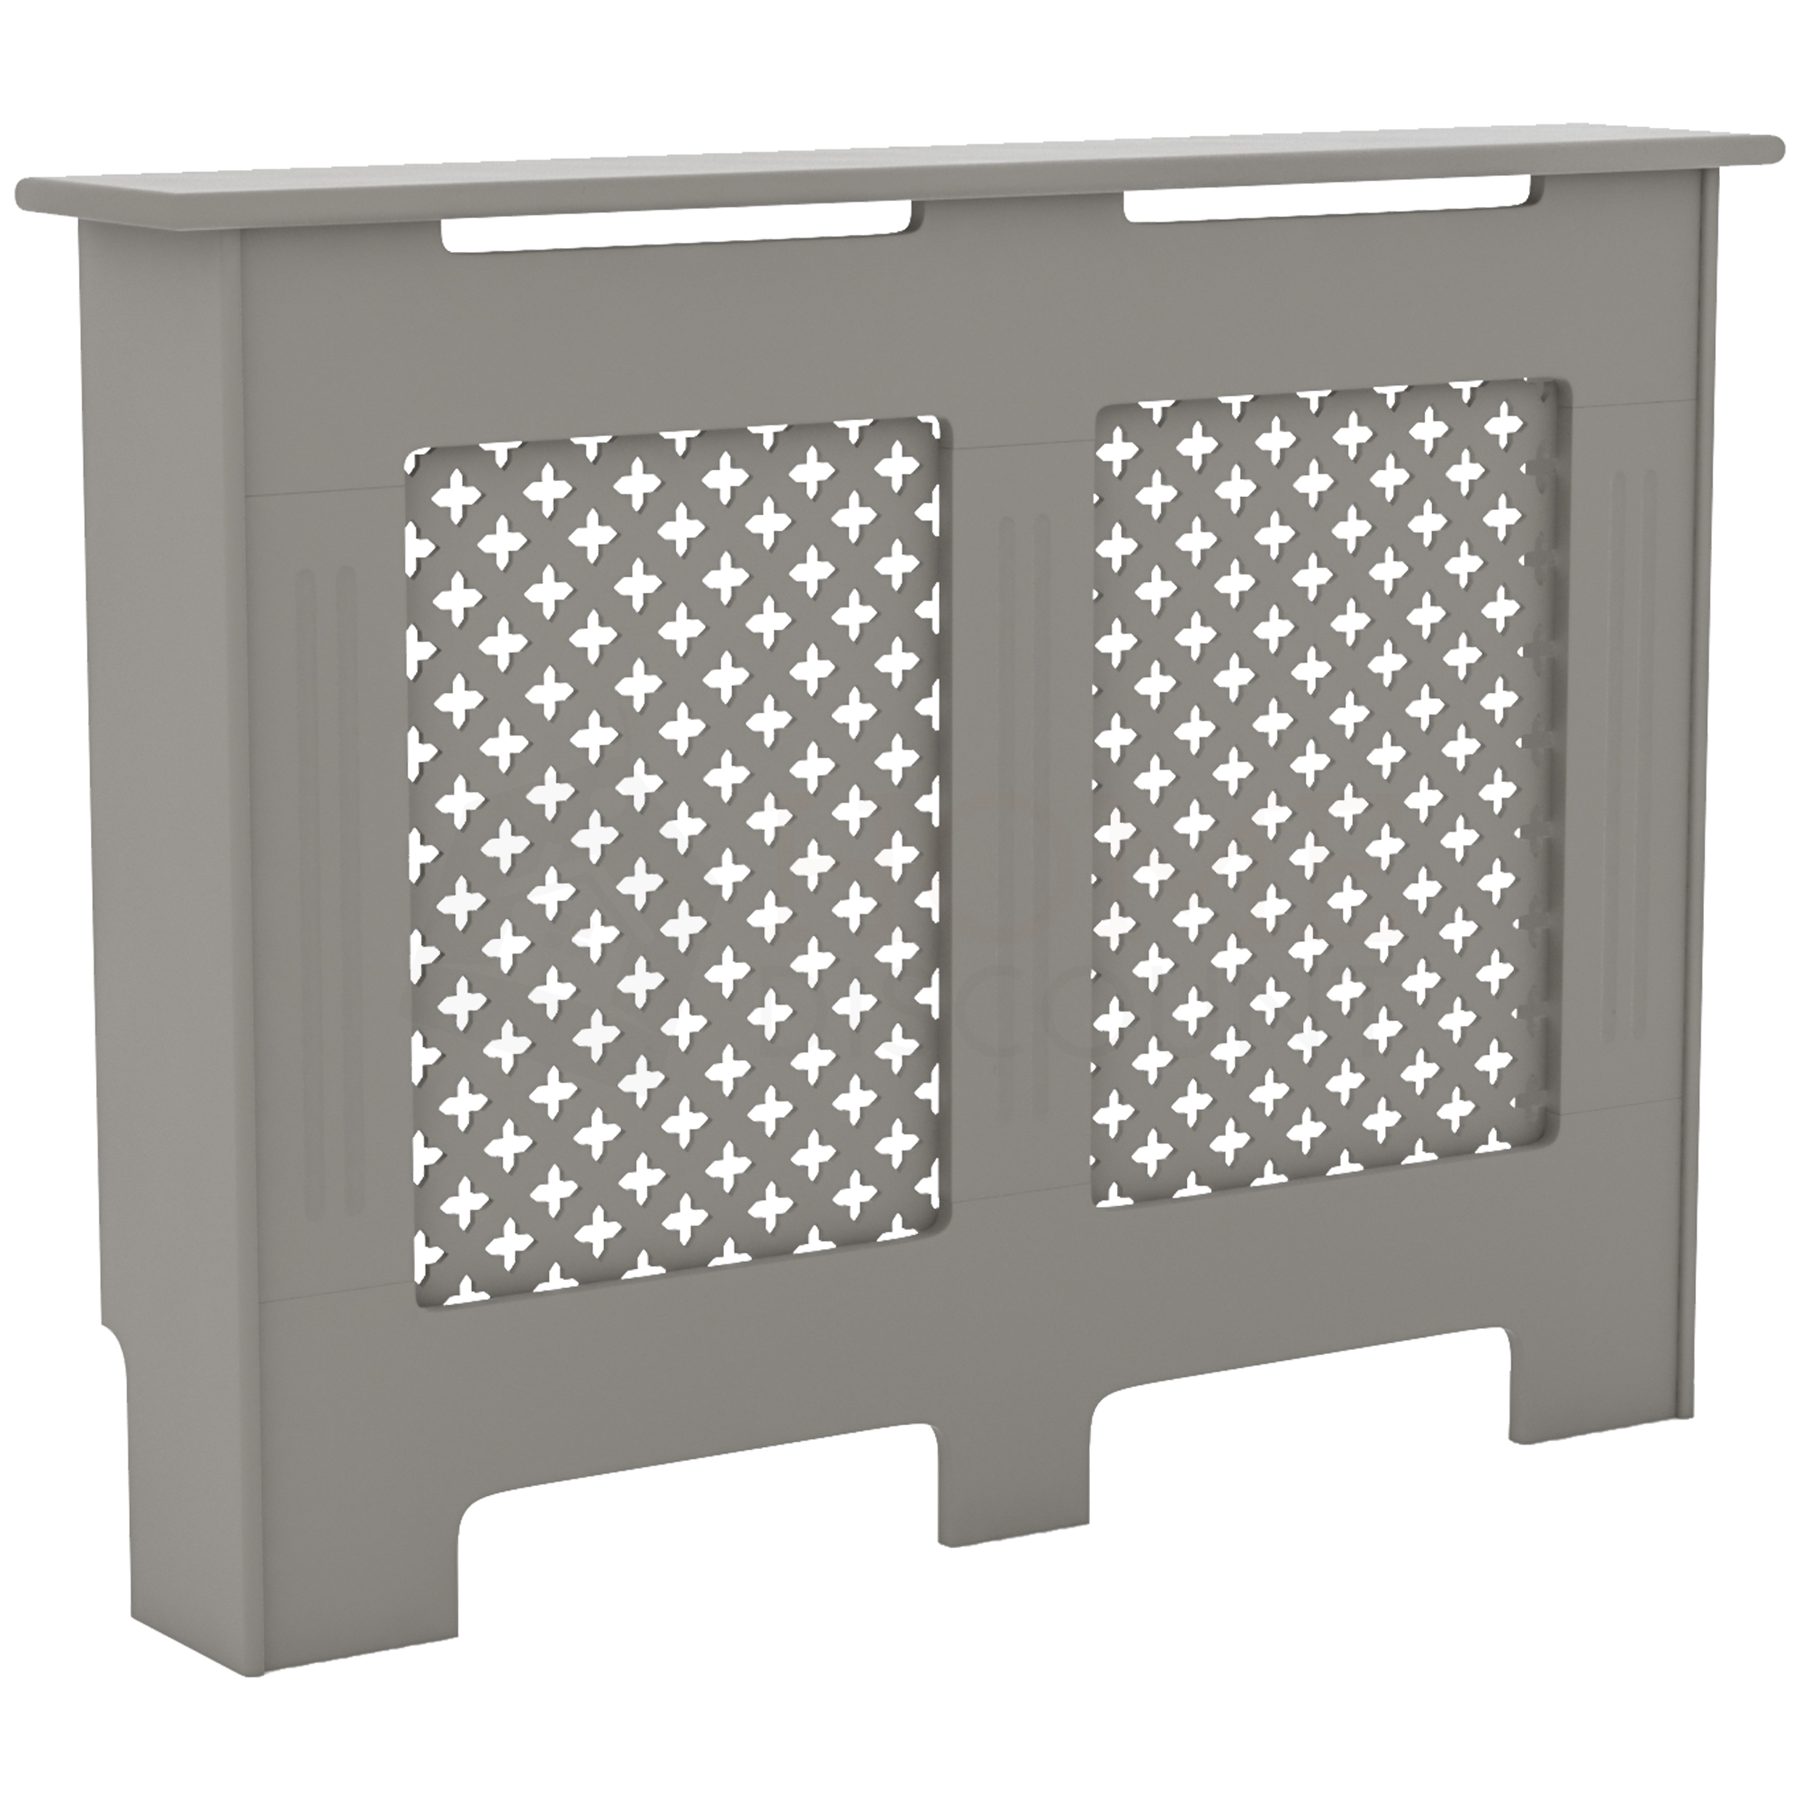 Radiateur-Housse-Blanc-inachevee-MODERNE-BOIS-TRADITIONNELLE-Grill-cabinet-furniture miniature 241